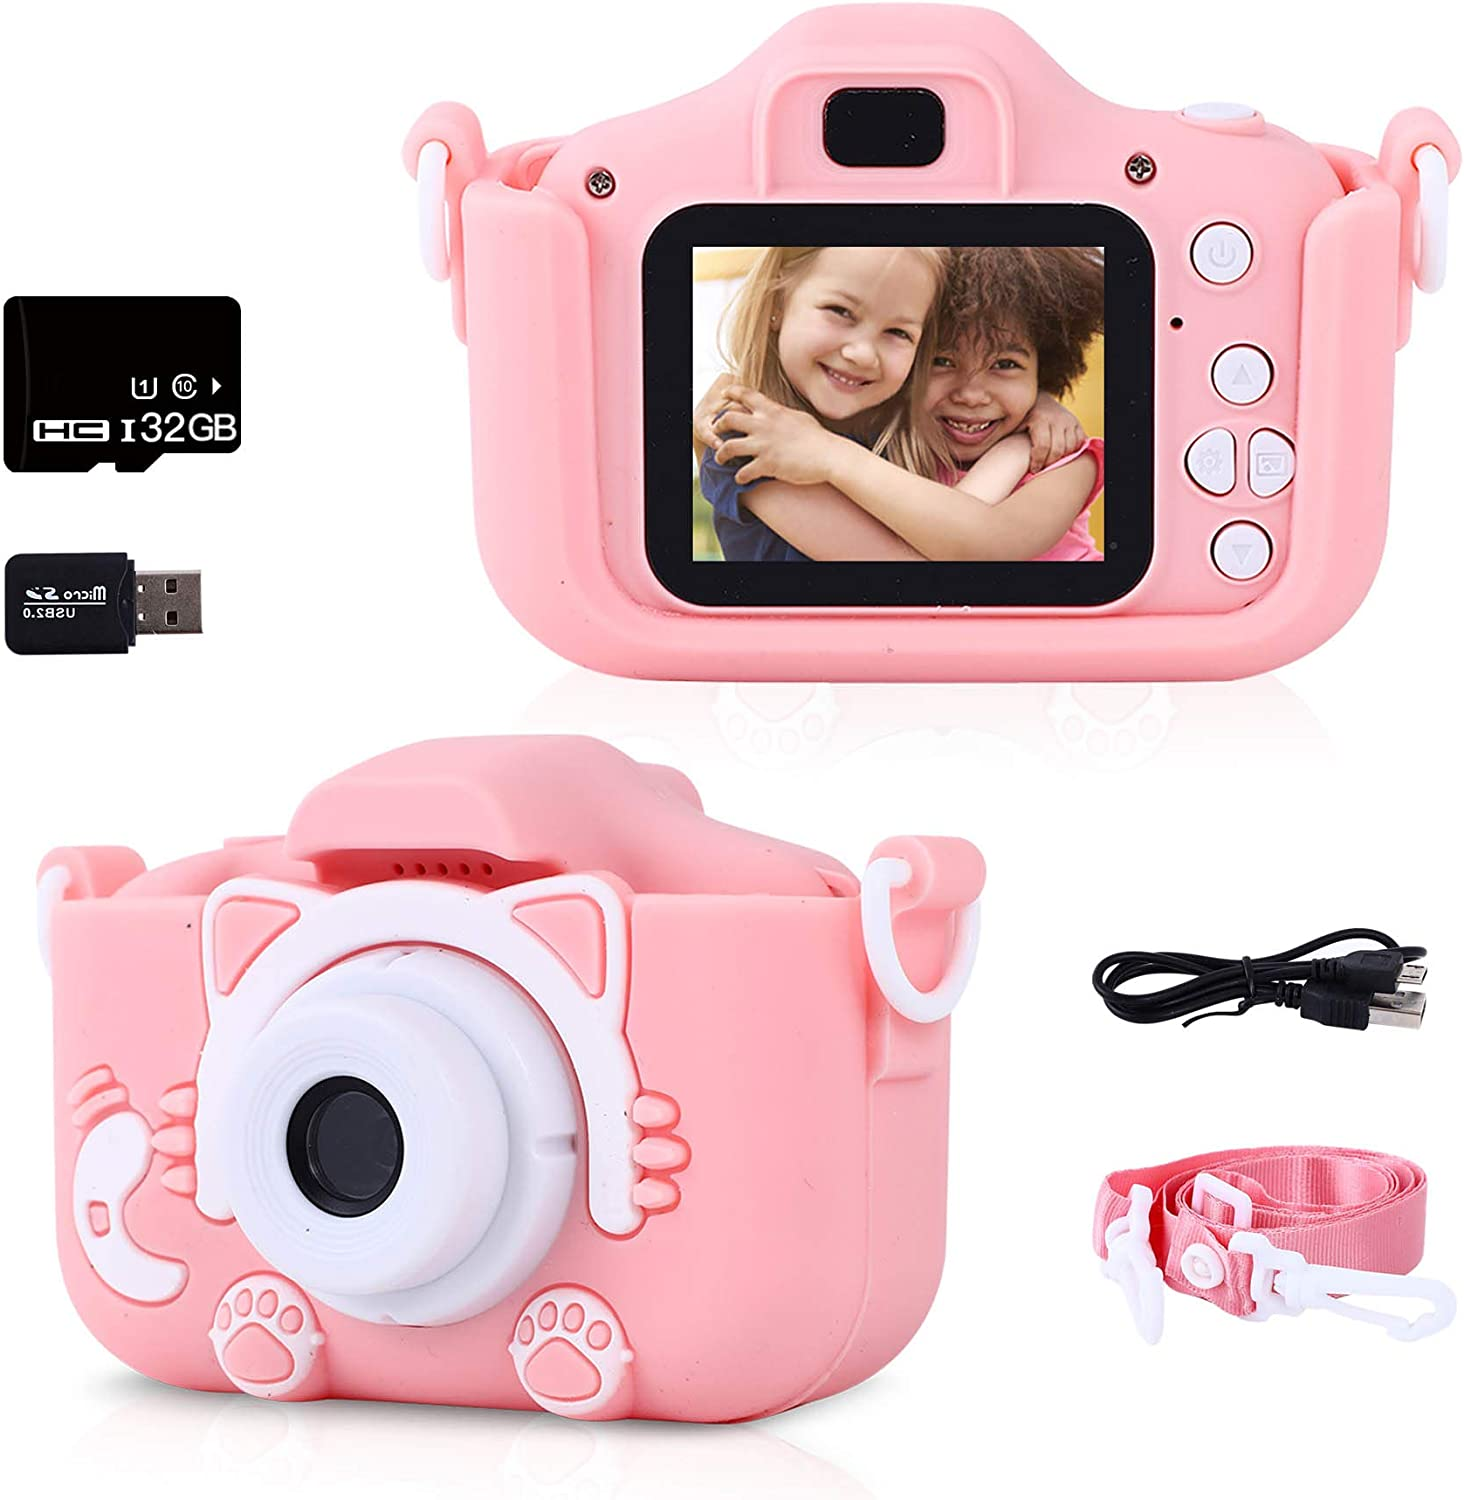 Kids Camera, Kids Digital Camera for Girls and Boys with 2 Inch IPS Screen and 1080P Video, Toddler Anti-Drop Camera is for 3-12 Years Old Girls and Boys(Included 32GB SD Card)